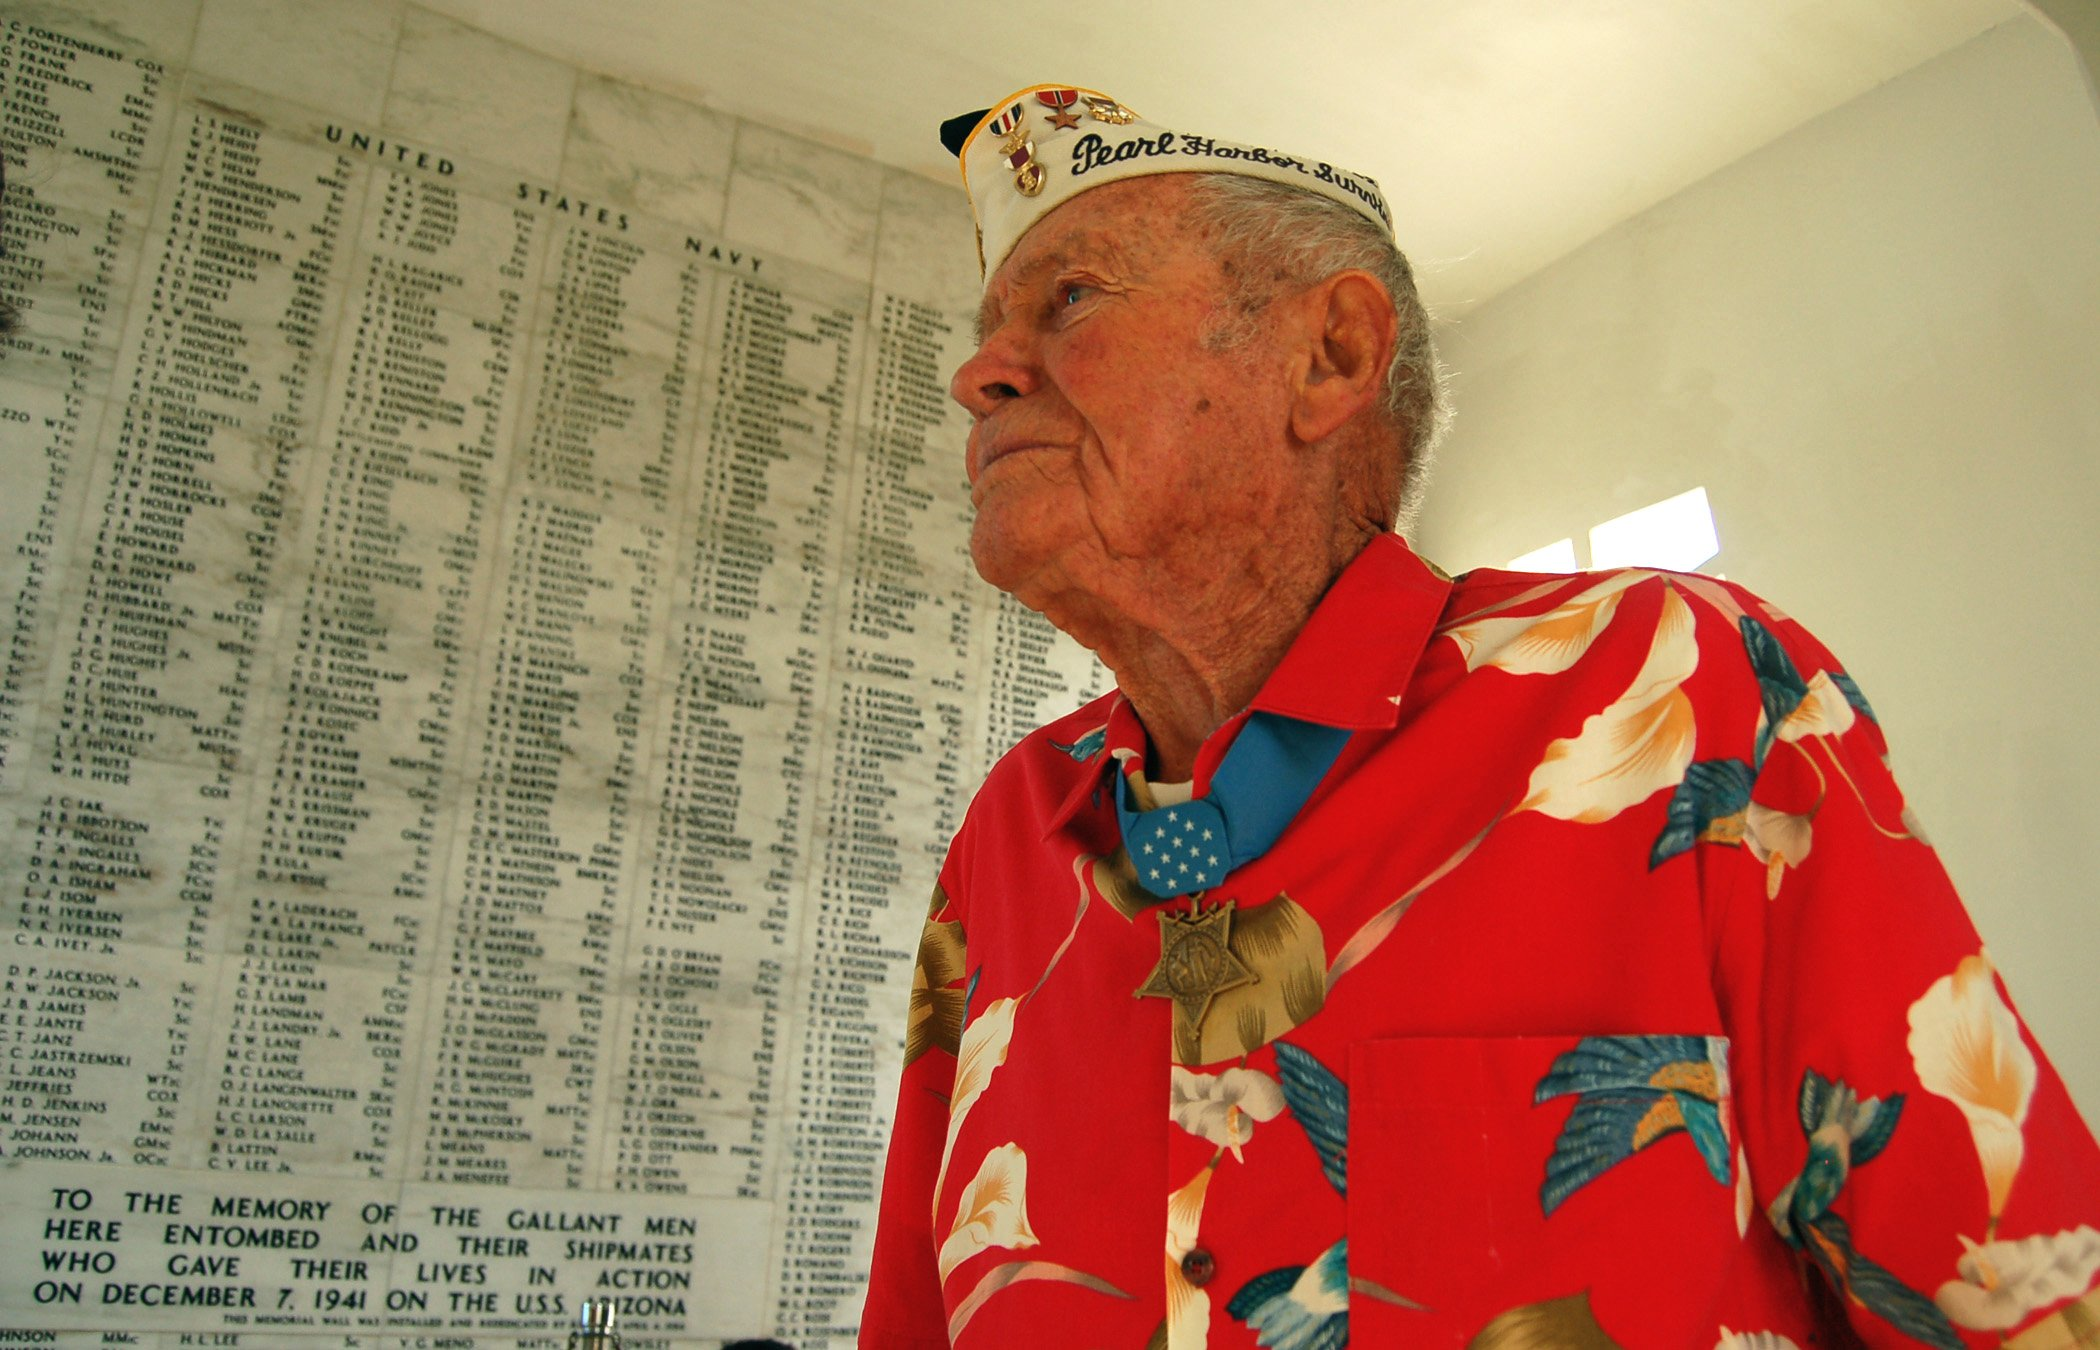 Lt. John Finn (Ret.) pays his respects to the Sailors and Marines killed aboard USS Arizona during the Dec. 7, 1941 attack on Pearl Harbor in 2007. US Navy Photo